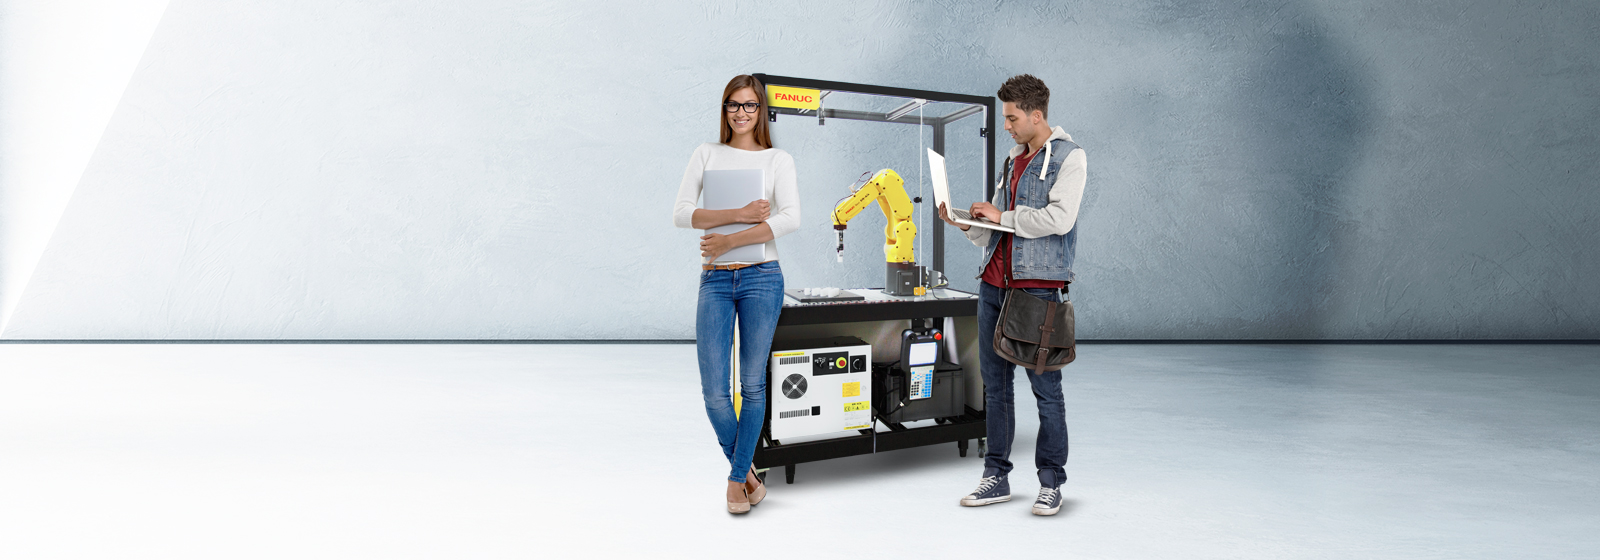 FANUC educational cell